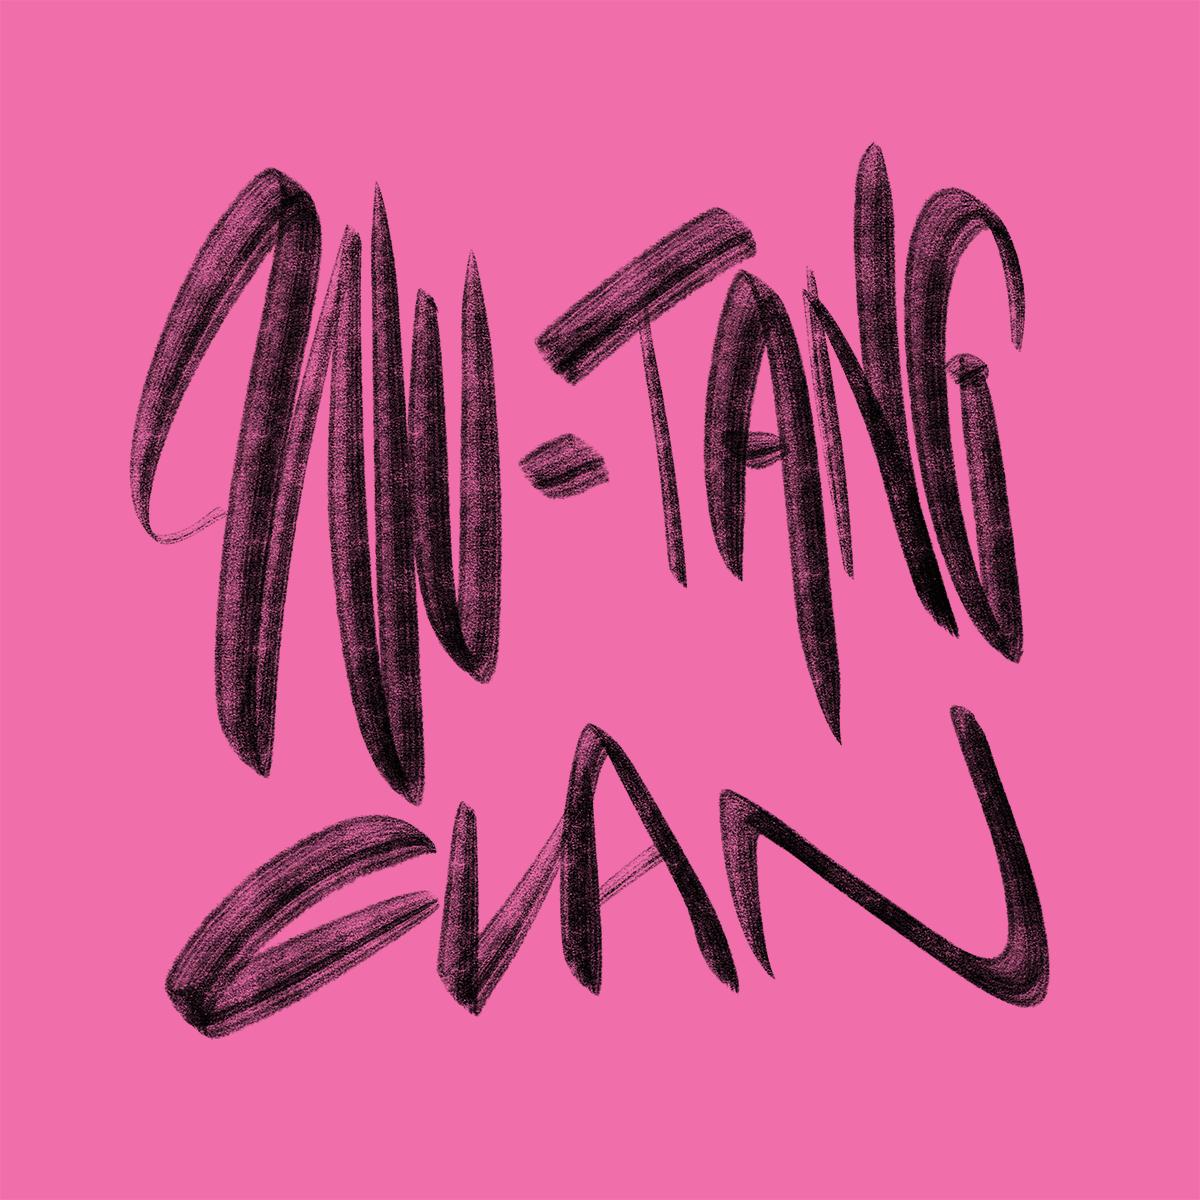 Wu Tang Brush by Typeverything.com